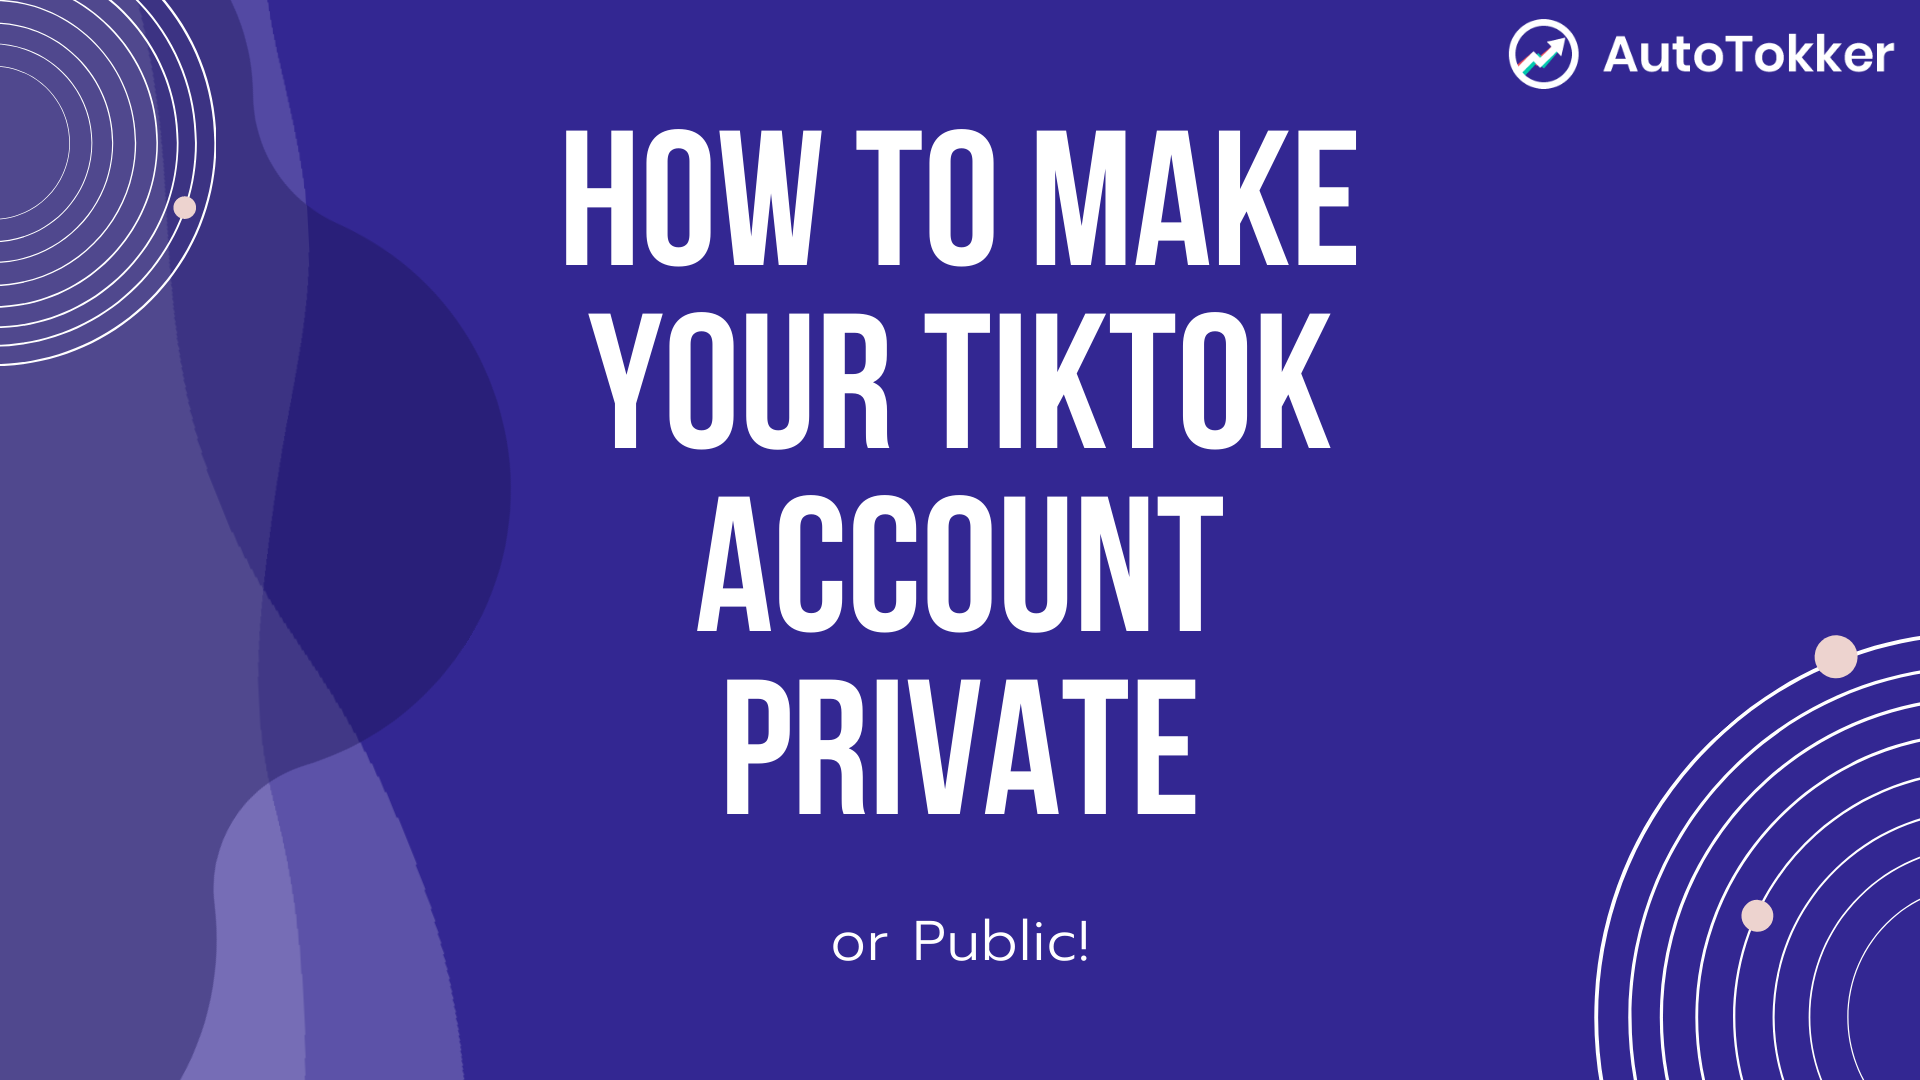 How To Make Your Tiktok Account Private Or Public Autotokker The Best Bot 3x More Follows Likes